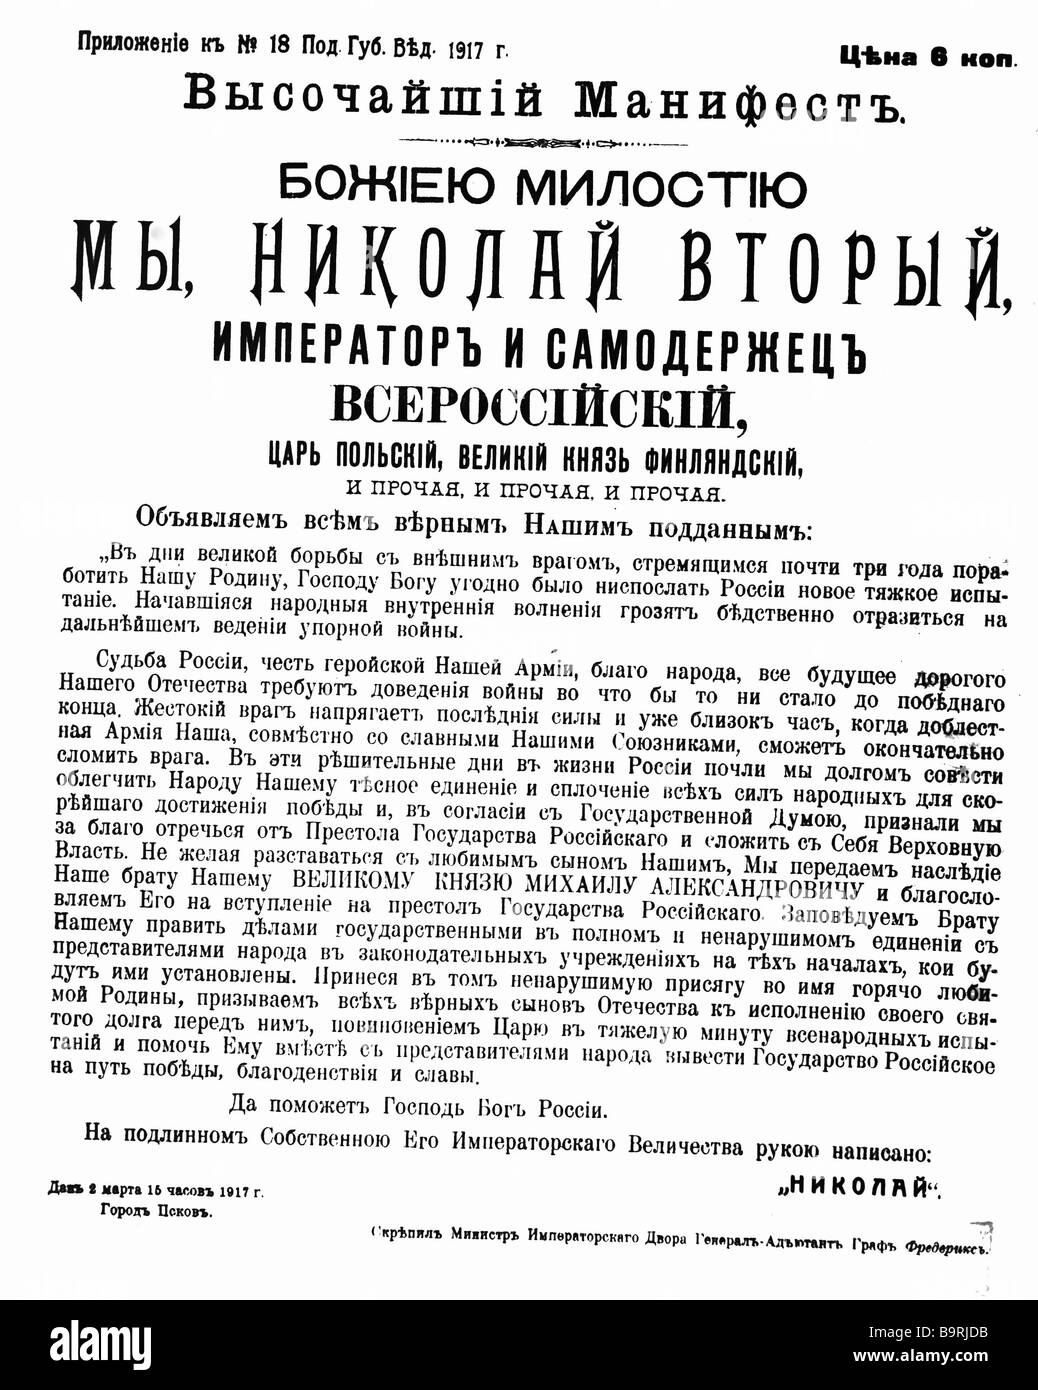 The Imperial Manifesto was Nicholas II s abdication from the throne in favor of Mikhail - Stock Image